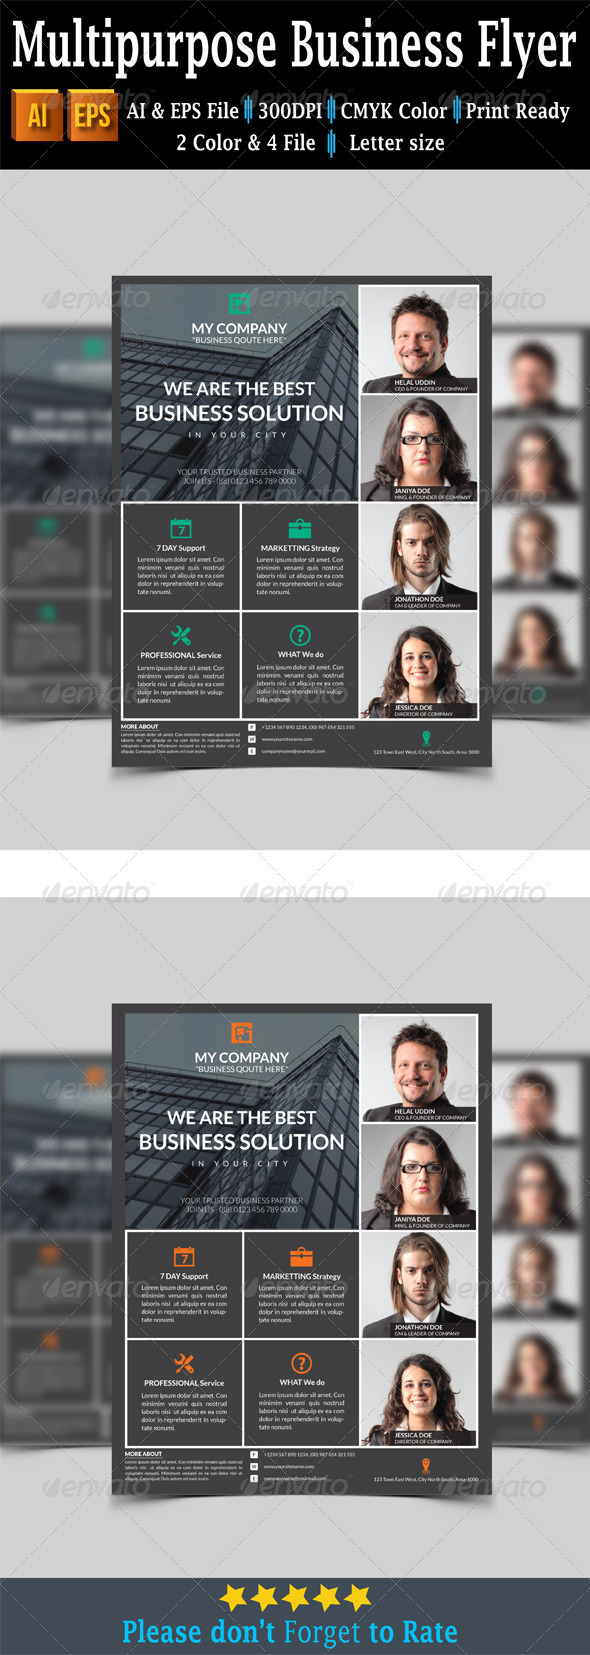 GraphicRiver Multipurpose Business Flyer 7739453